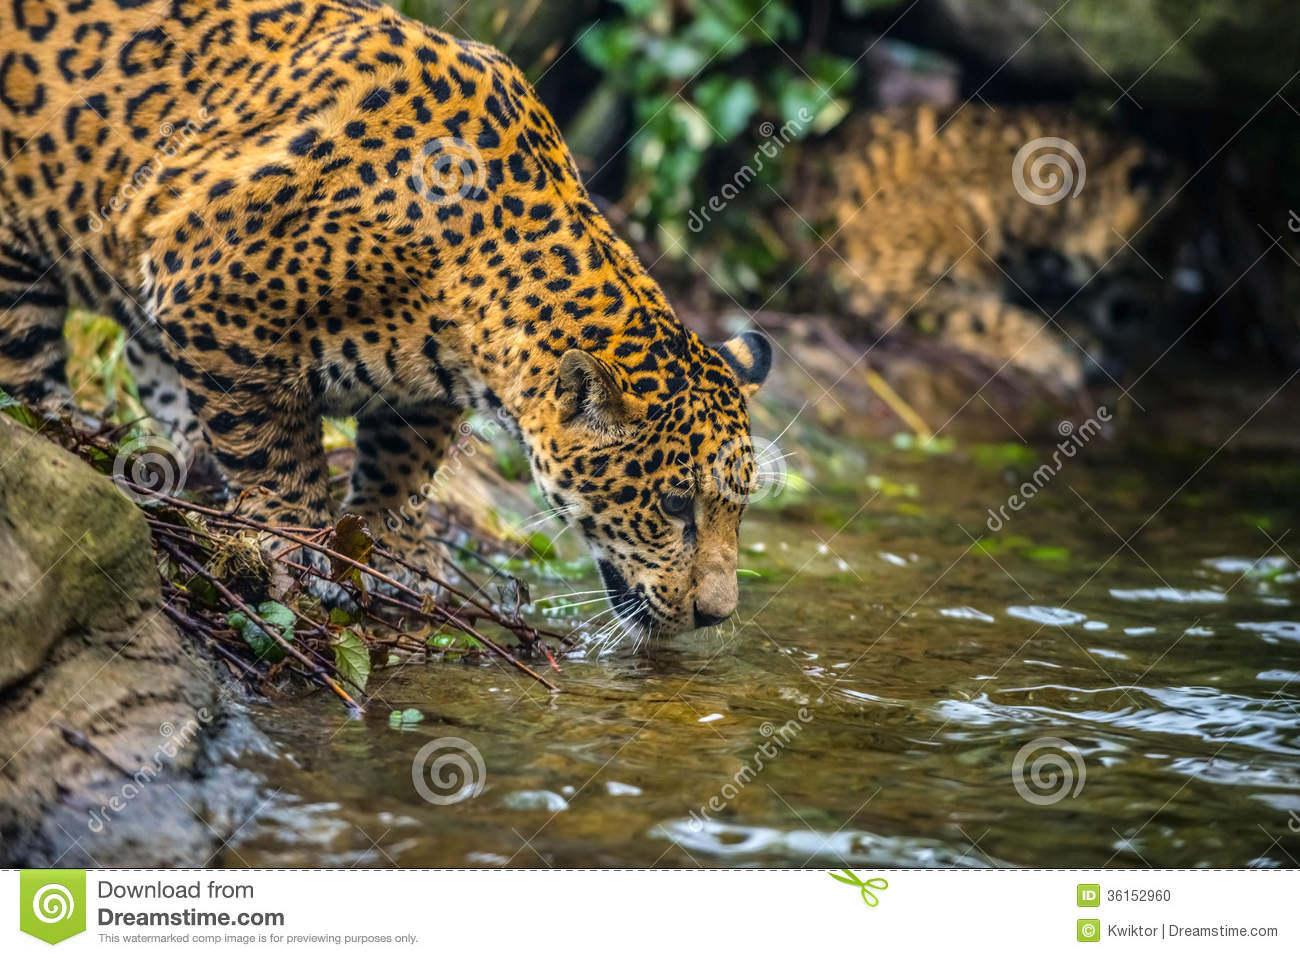 Colorful Animal Print Wallpaper Jaguar In The Jungle Stock Photo Image Of Animal Mammal